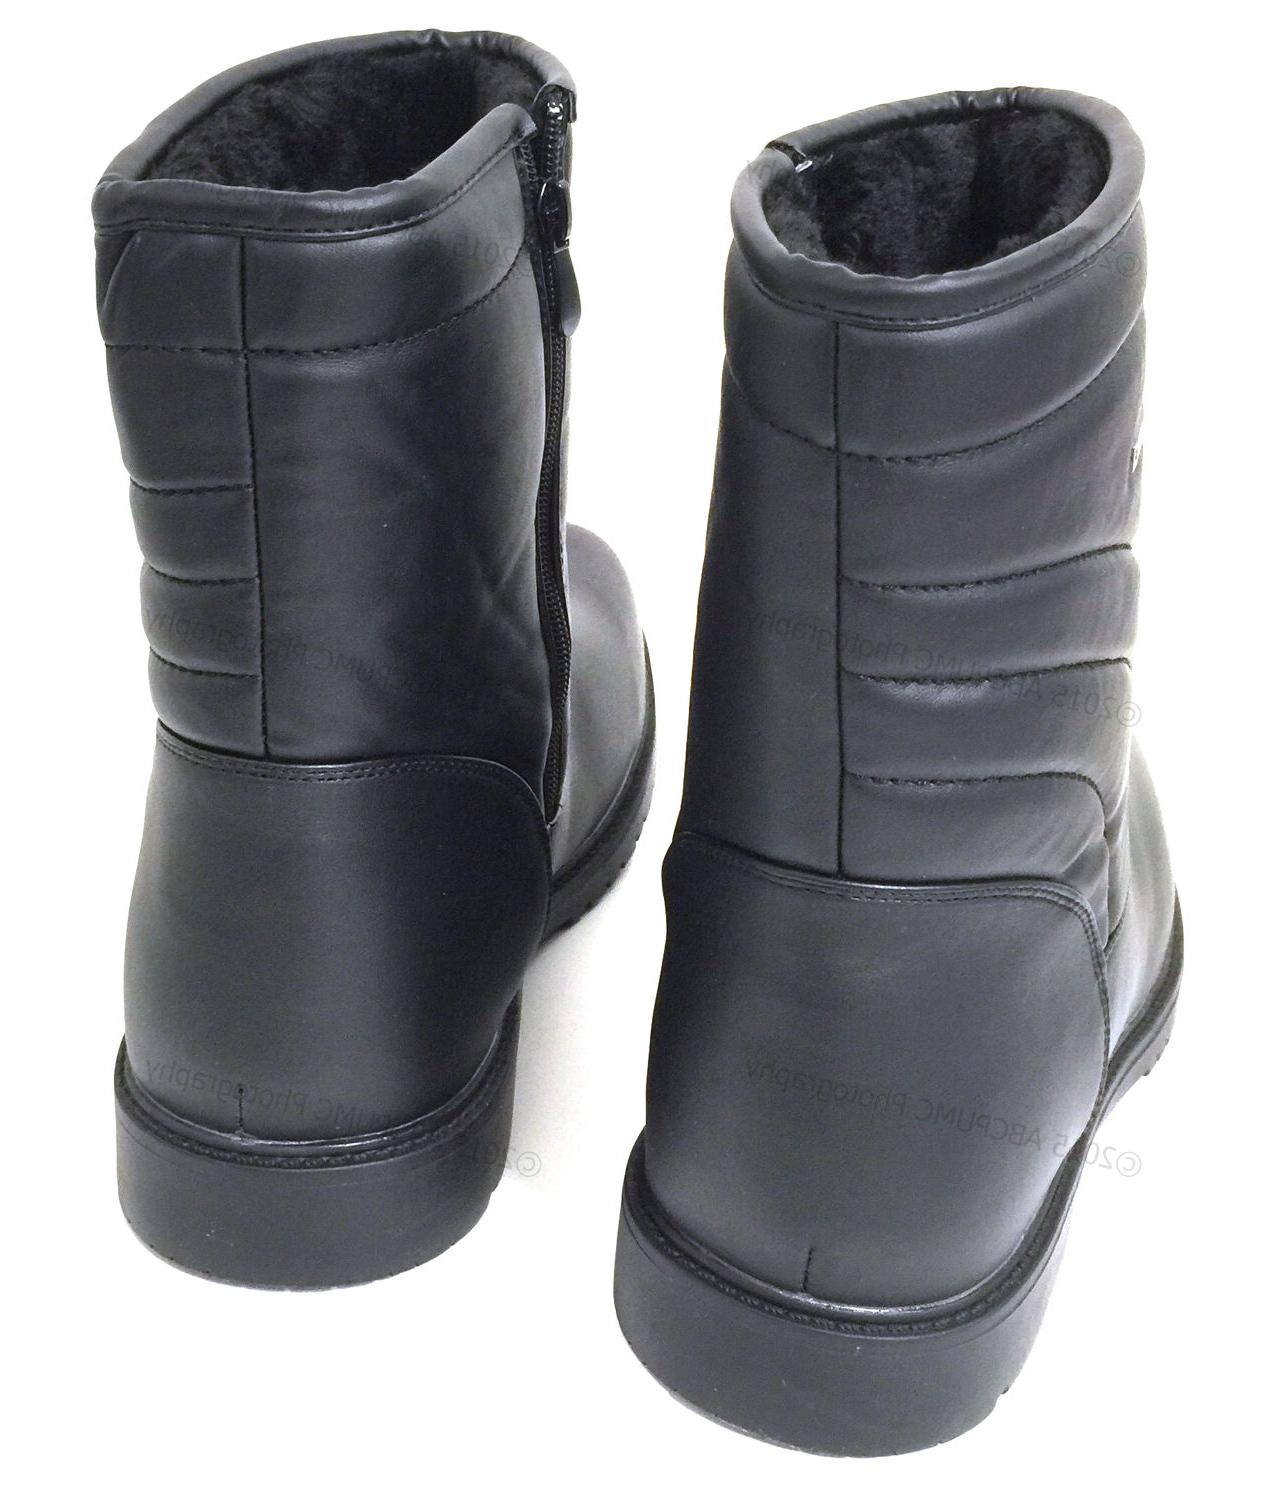 Brand New Men's Boots Leather Shoes